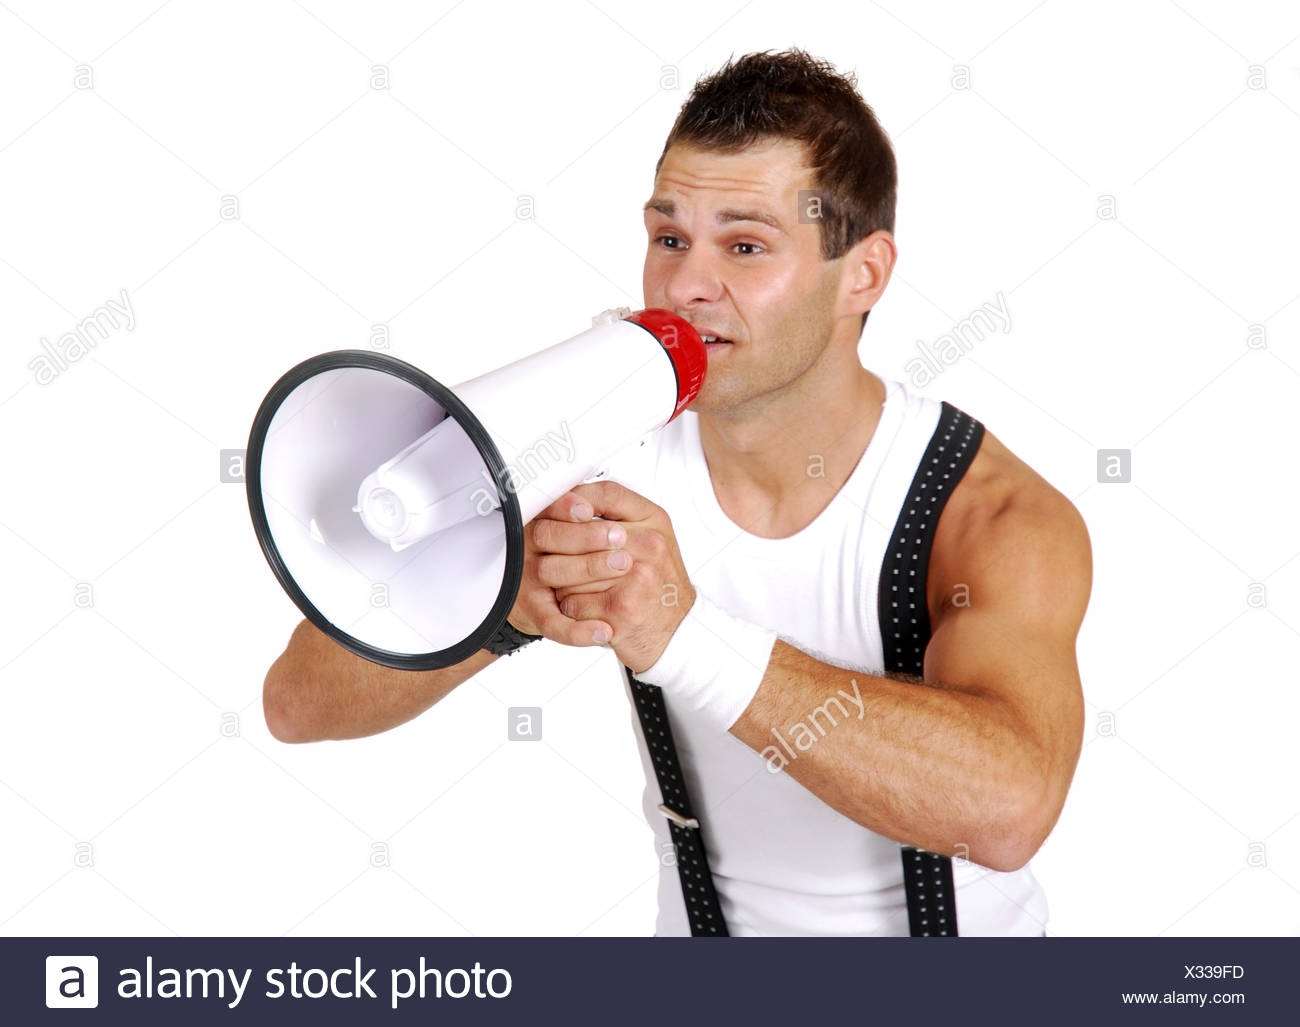 earnest announcement megaphone fire young younger self-confidence - Stock Image